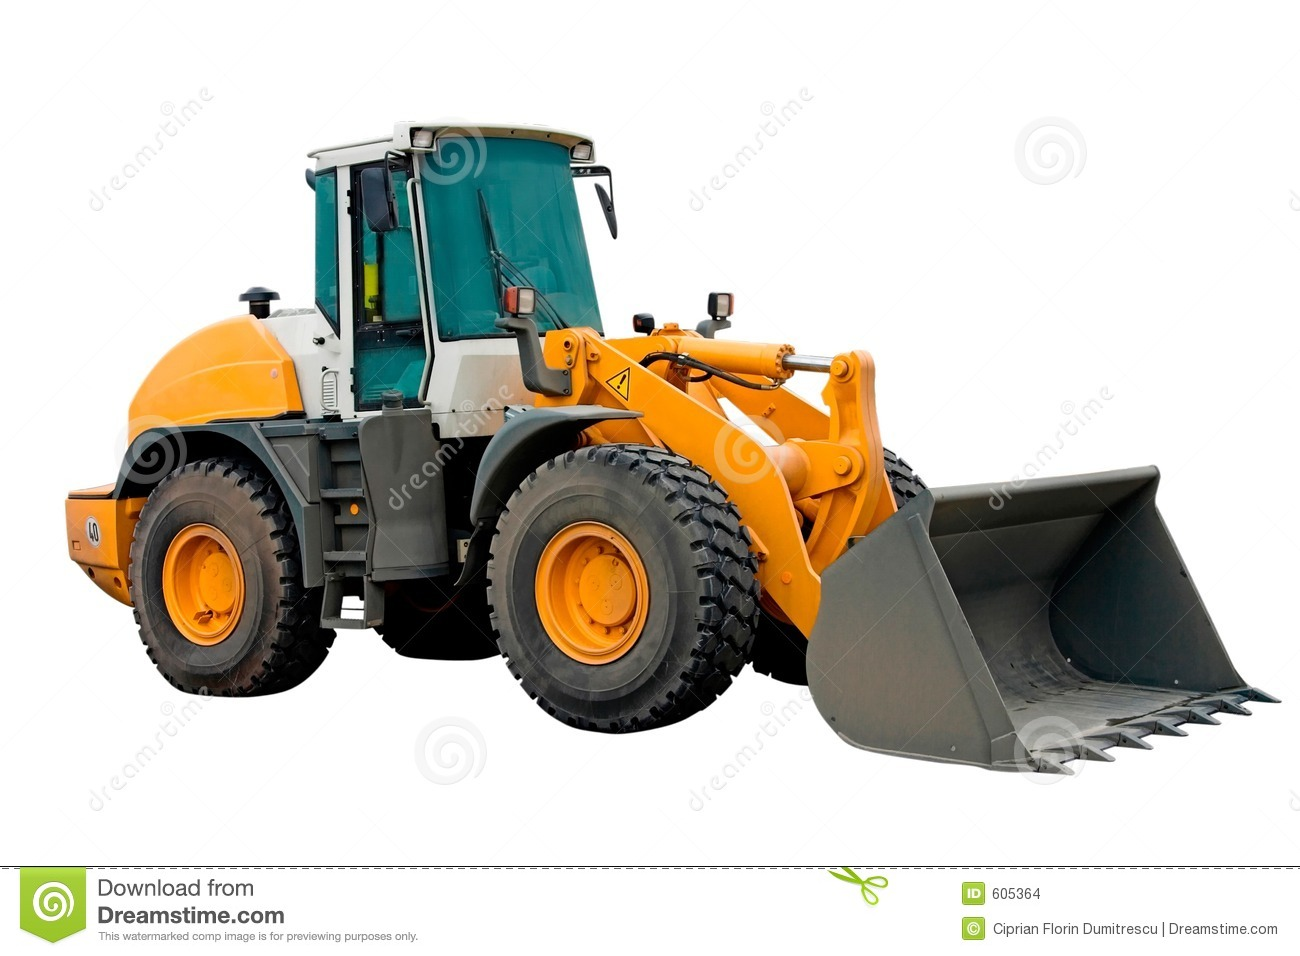 Big Excavator Machinery Stock Images - Image: 605364